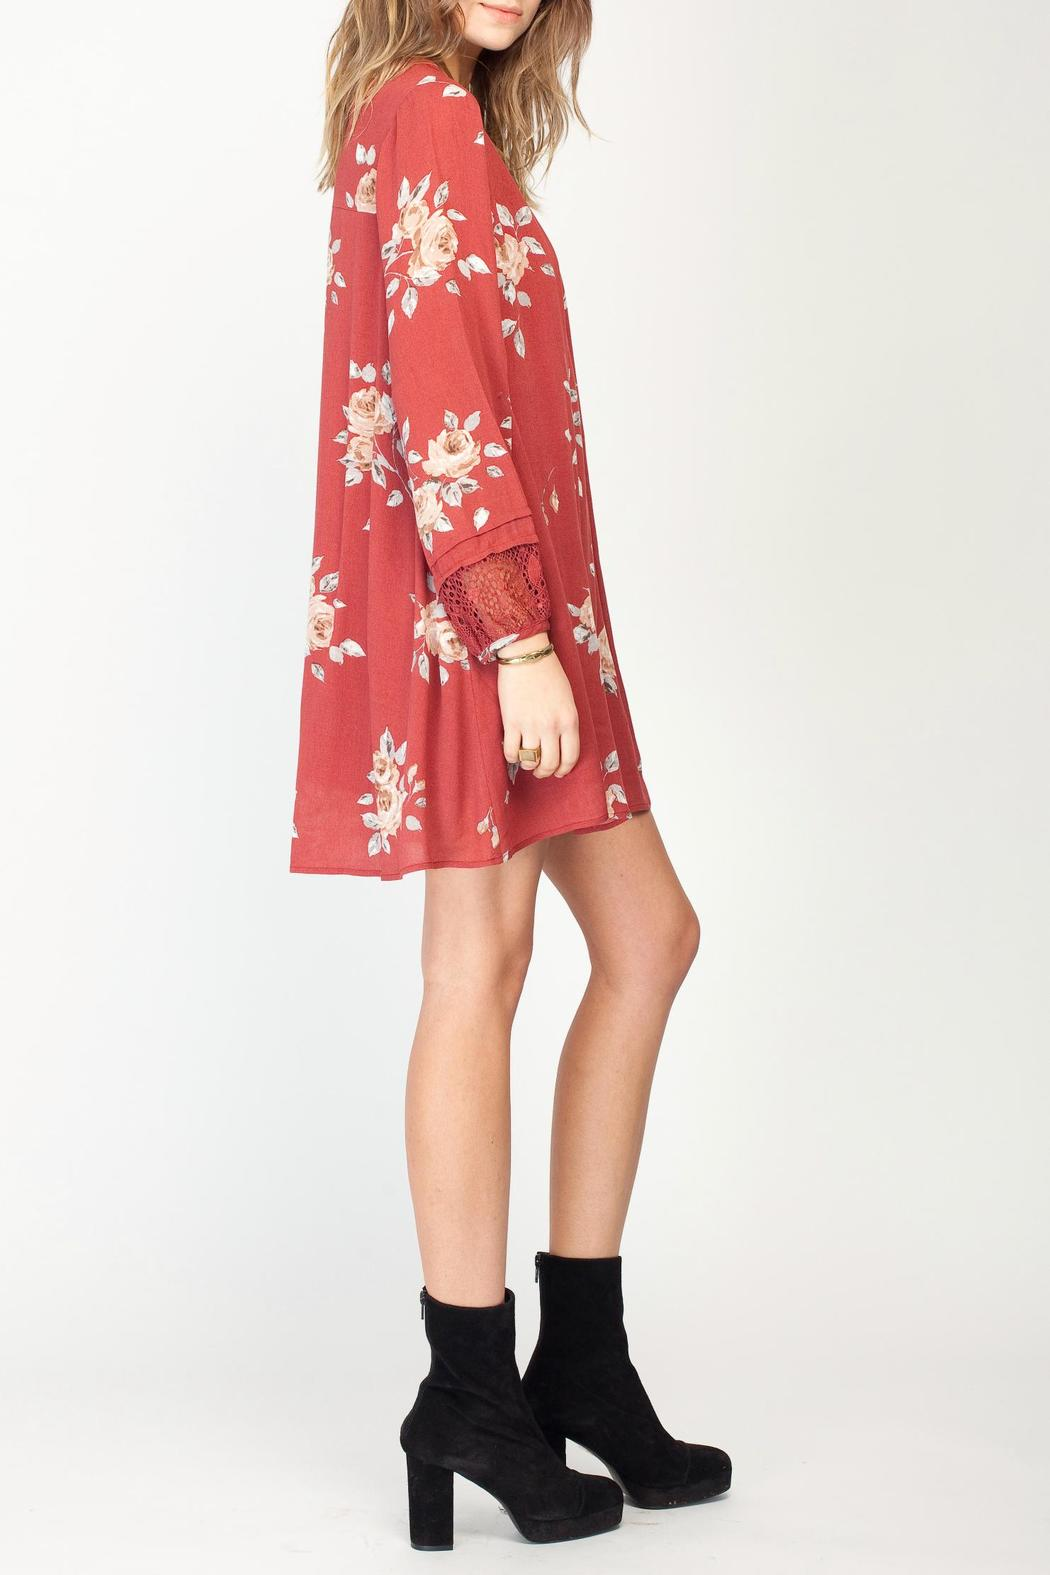 Gentle Fawn Floral Utopia Dress - Front Full Image